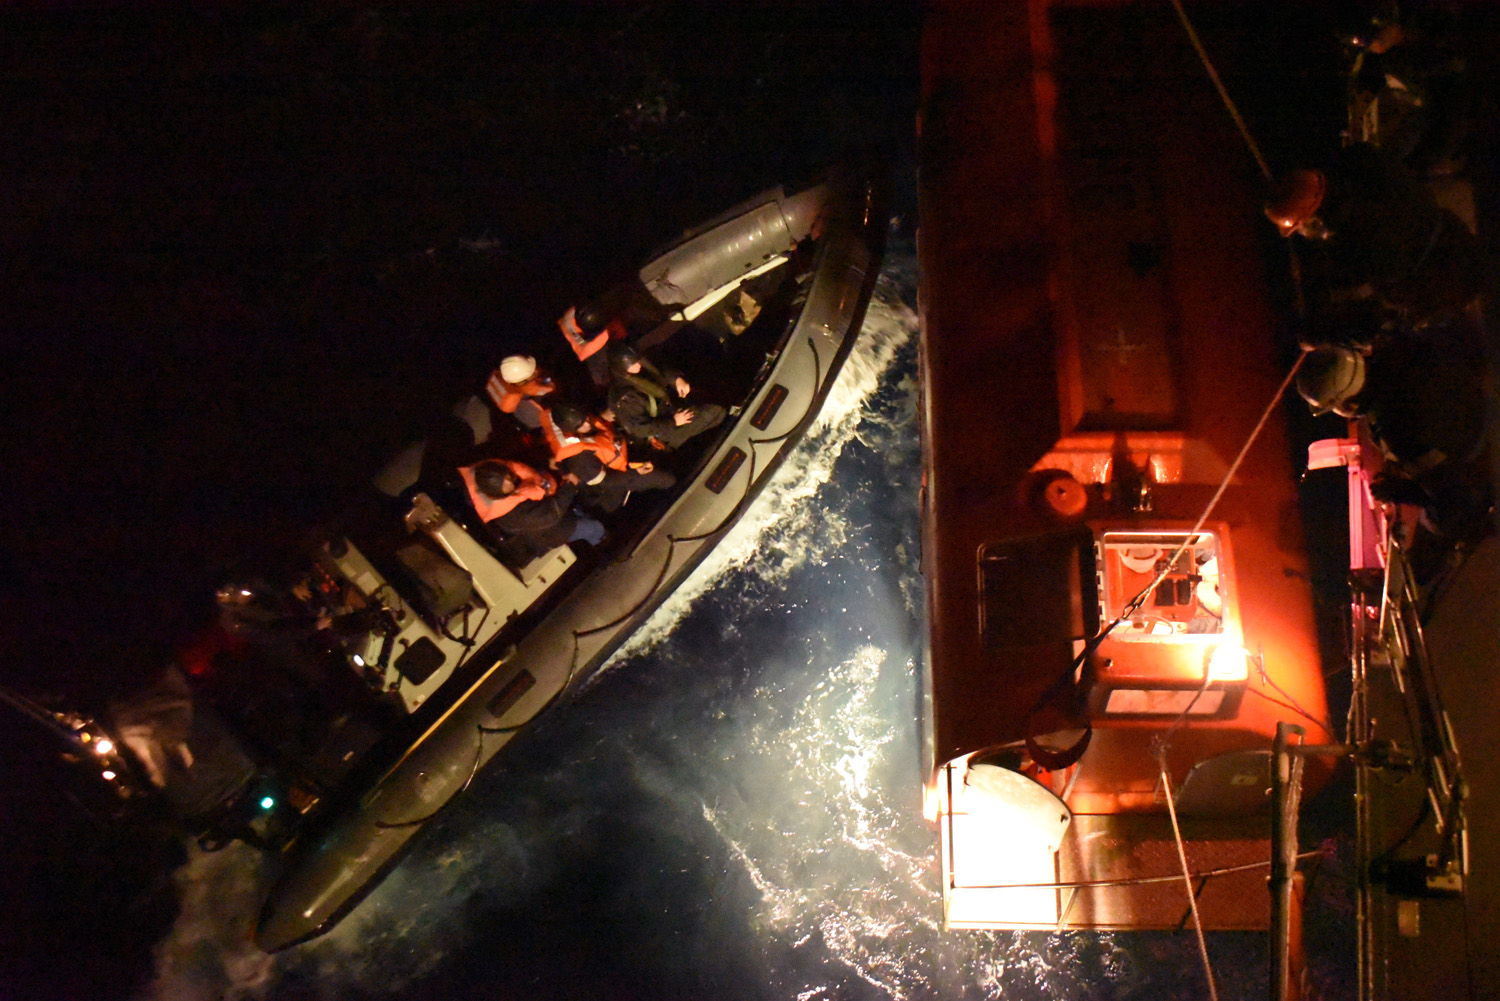 HMS Argyll's sea boat pushing the lifeboat to safety.